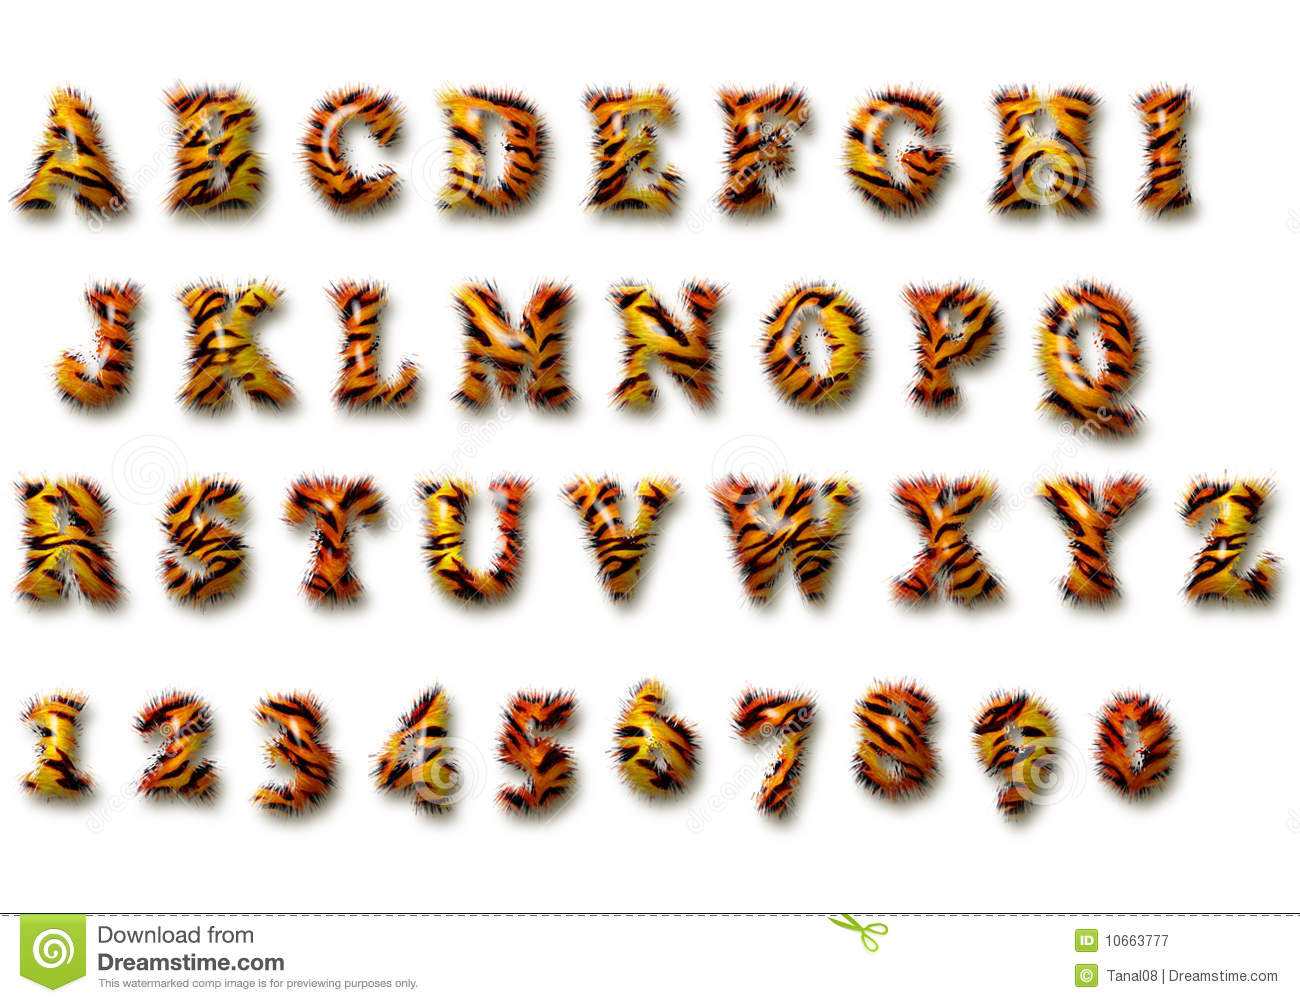 Tiger Font Royalty Free Stock Photography Image 10663777